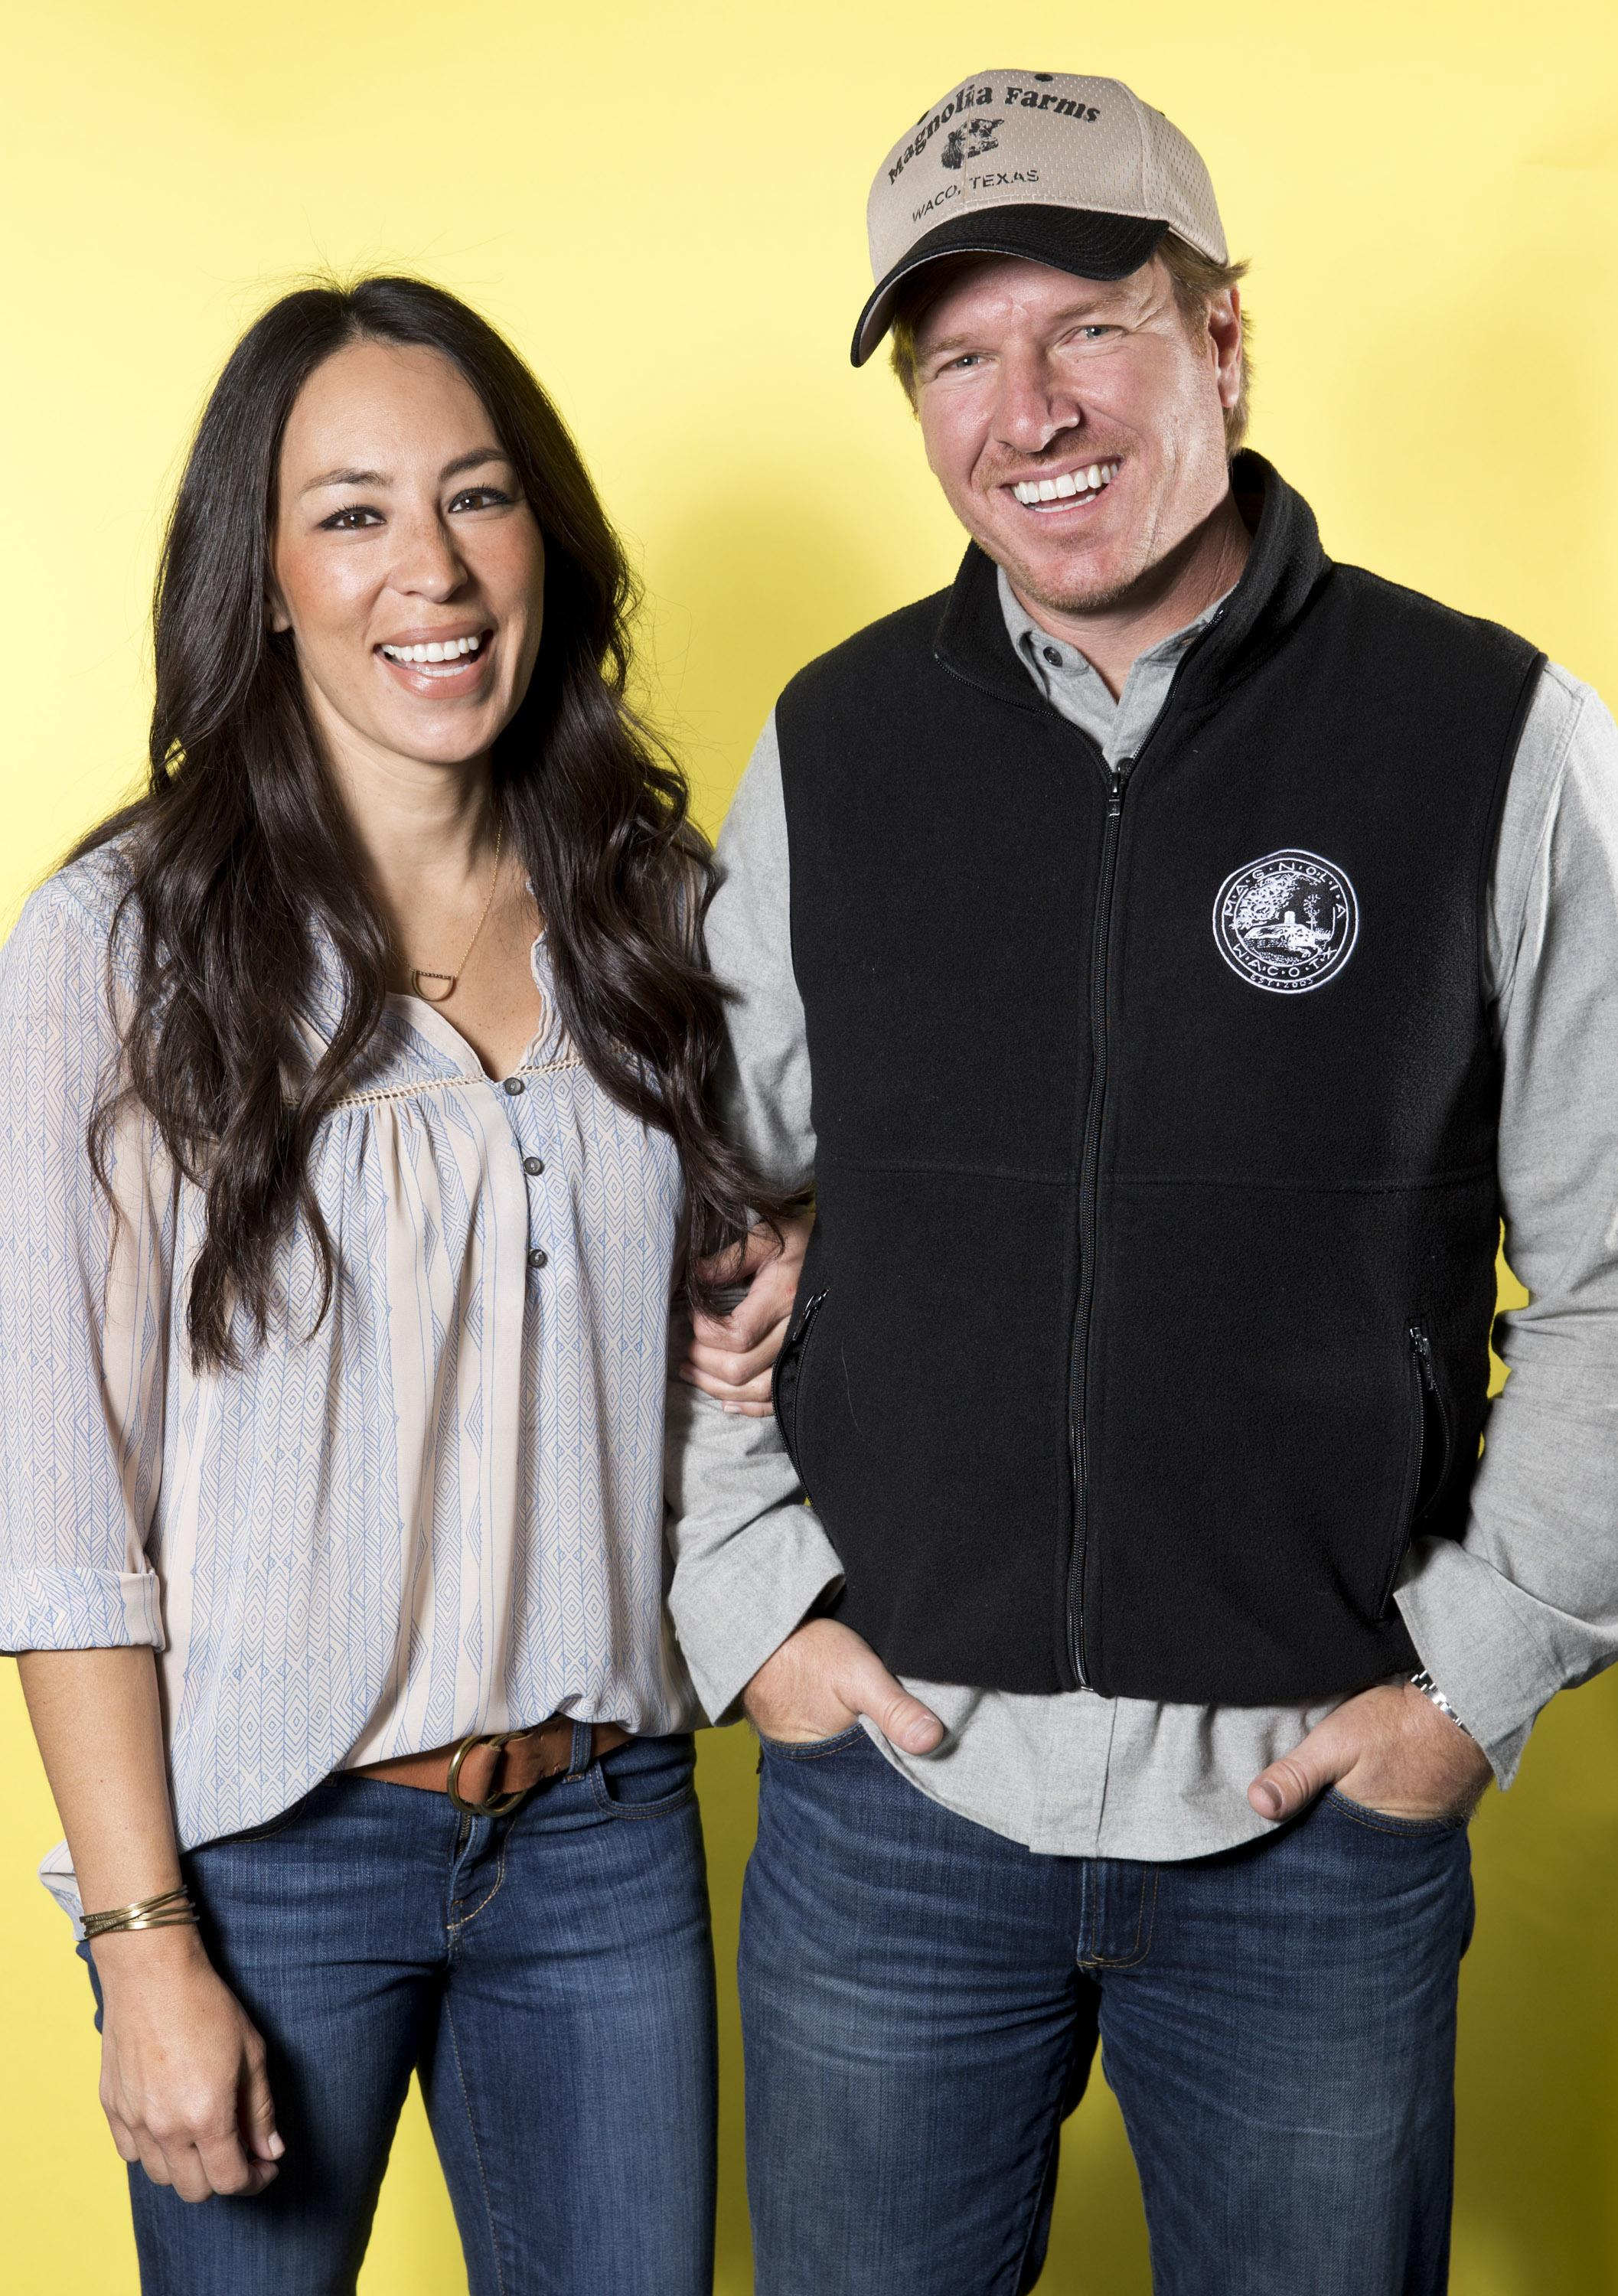 chip and joanna gaines u0027fixer upperu0027 couple targeted by left for their faith washington times - Shows On Hgtv